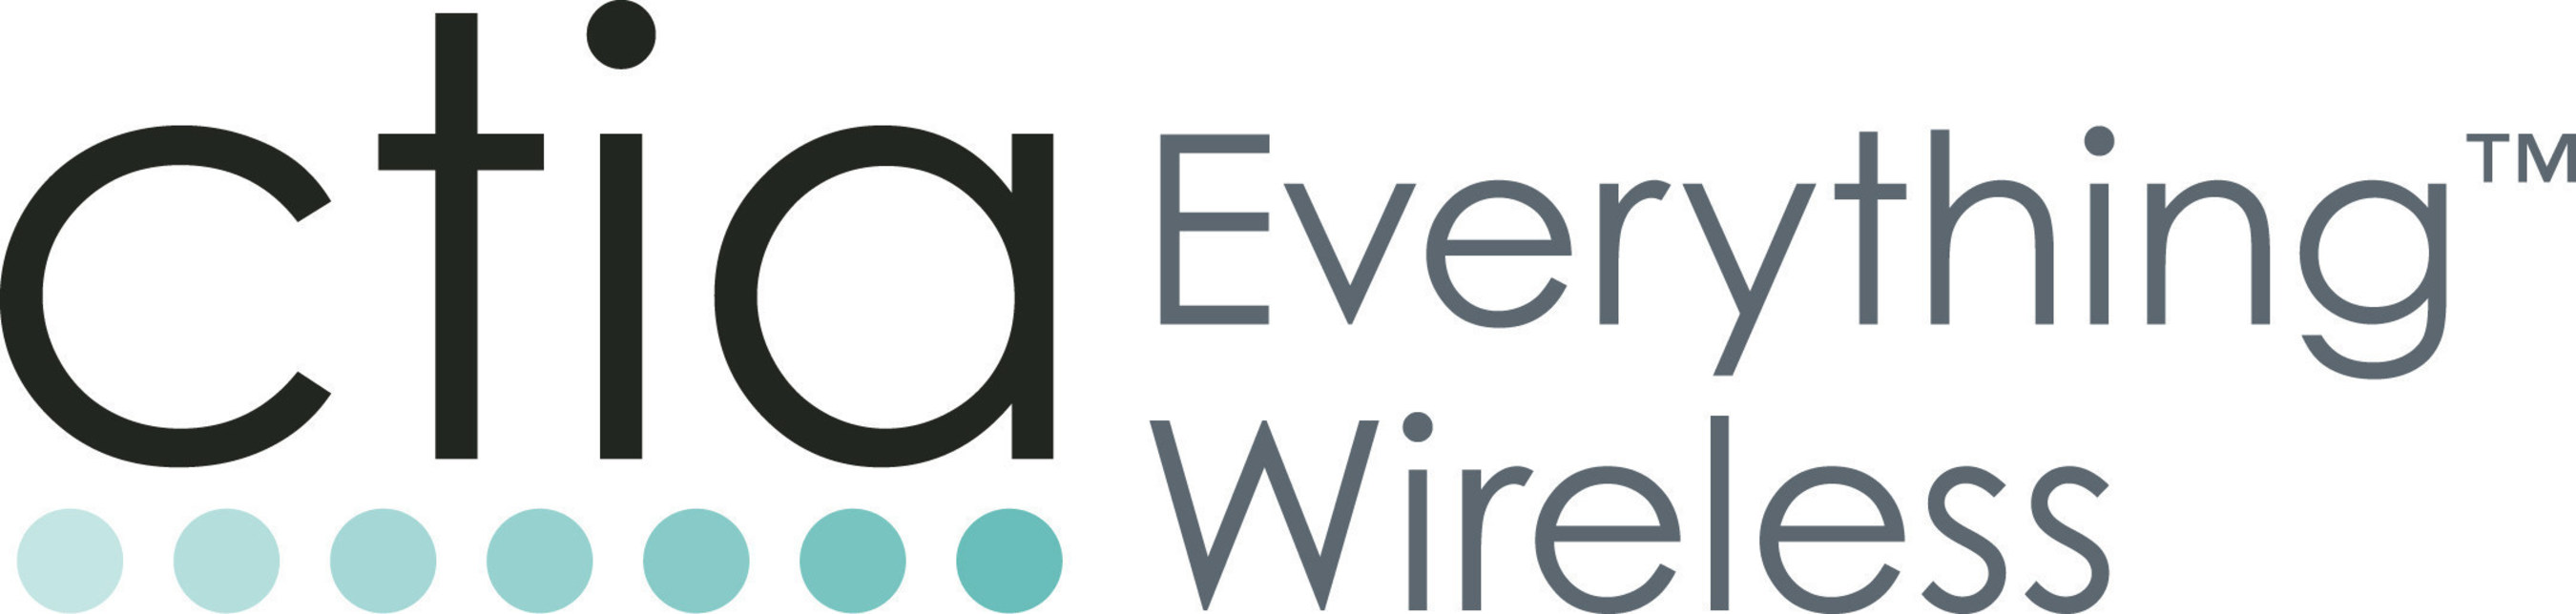 Mobile Device Theft Prevention Industry Initiative Announces Request for Proposal for Mobile Device Information Portal